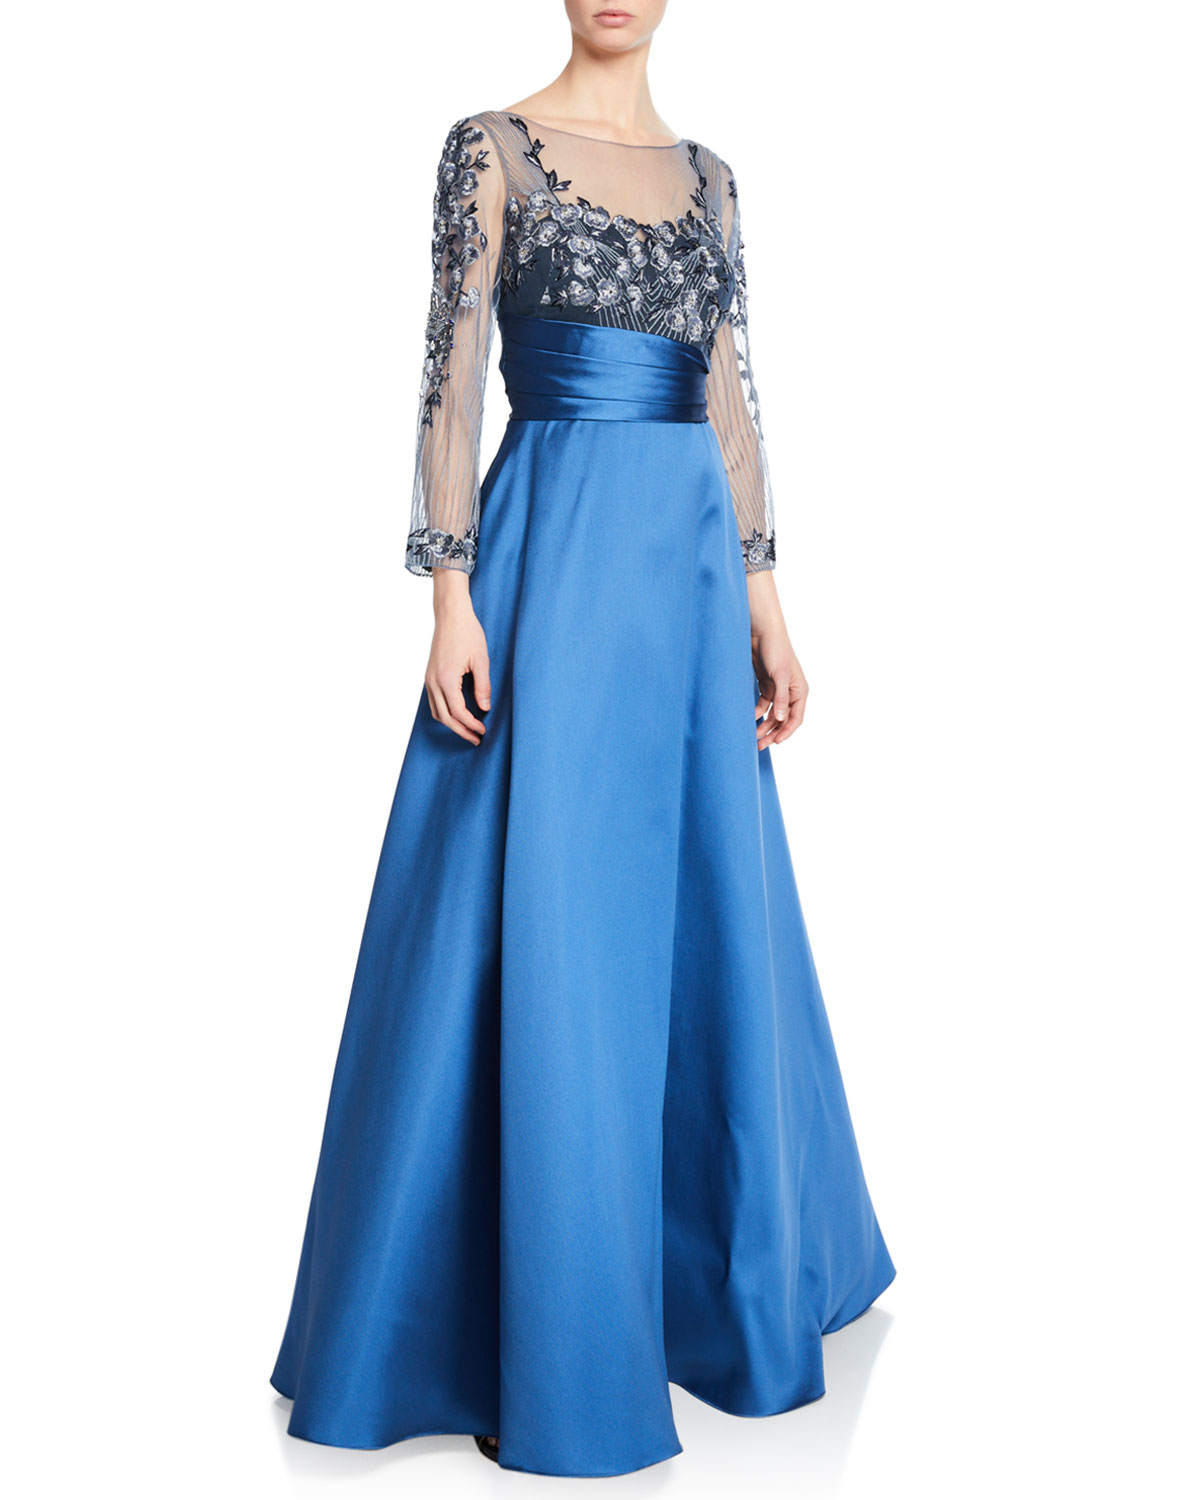 Marchesa Notte Sweetheart Illusion Mikado Ball Gown w/ 3D Floral-Embroidered Bodice